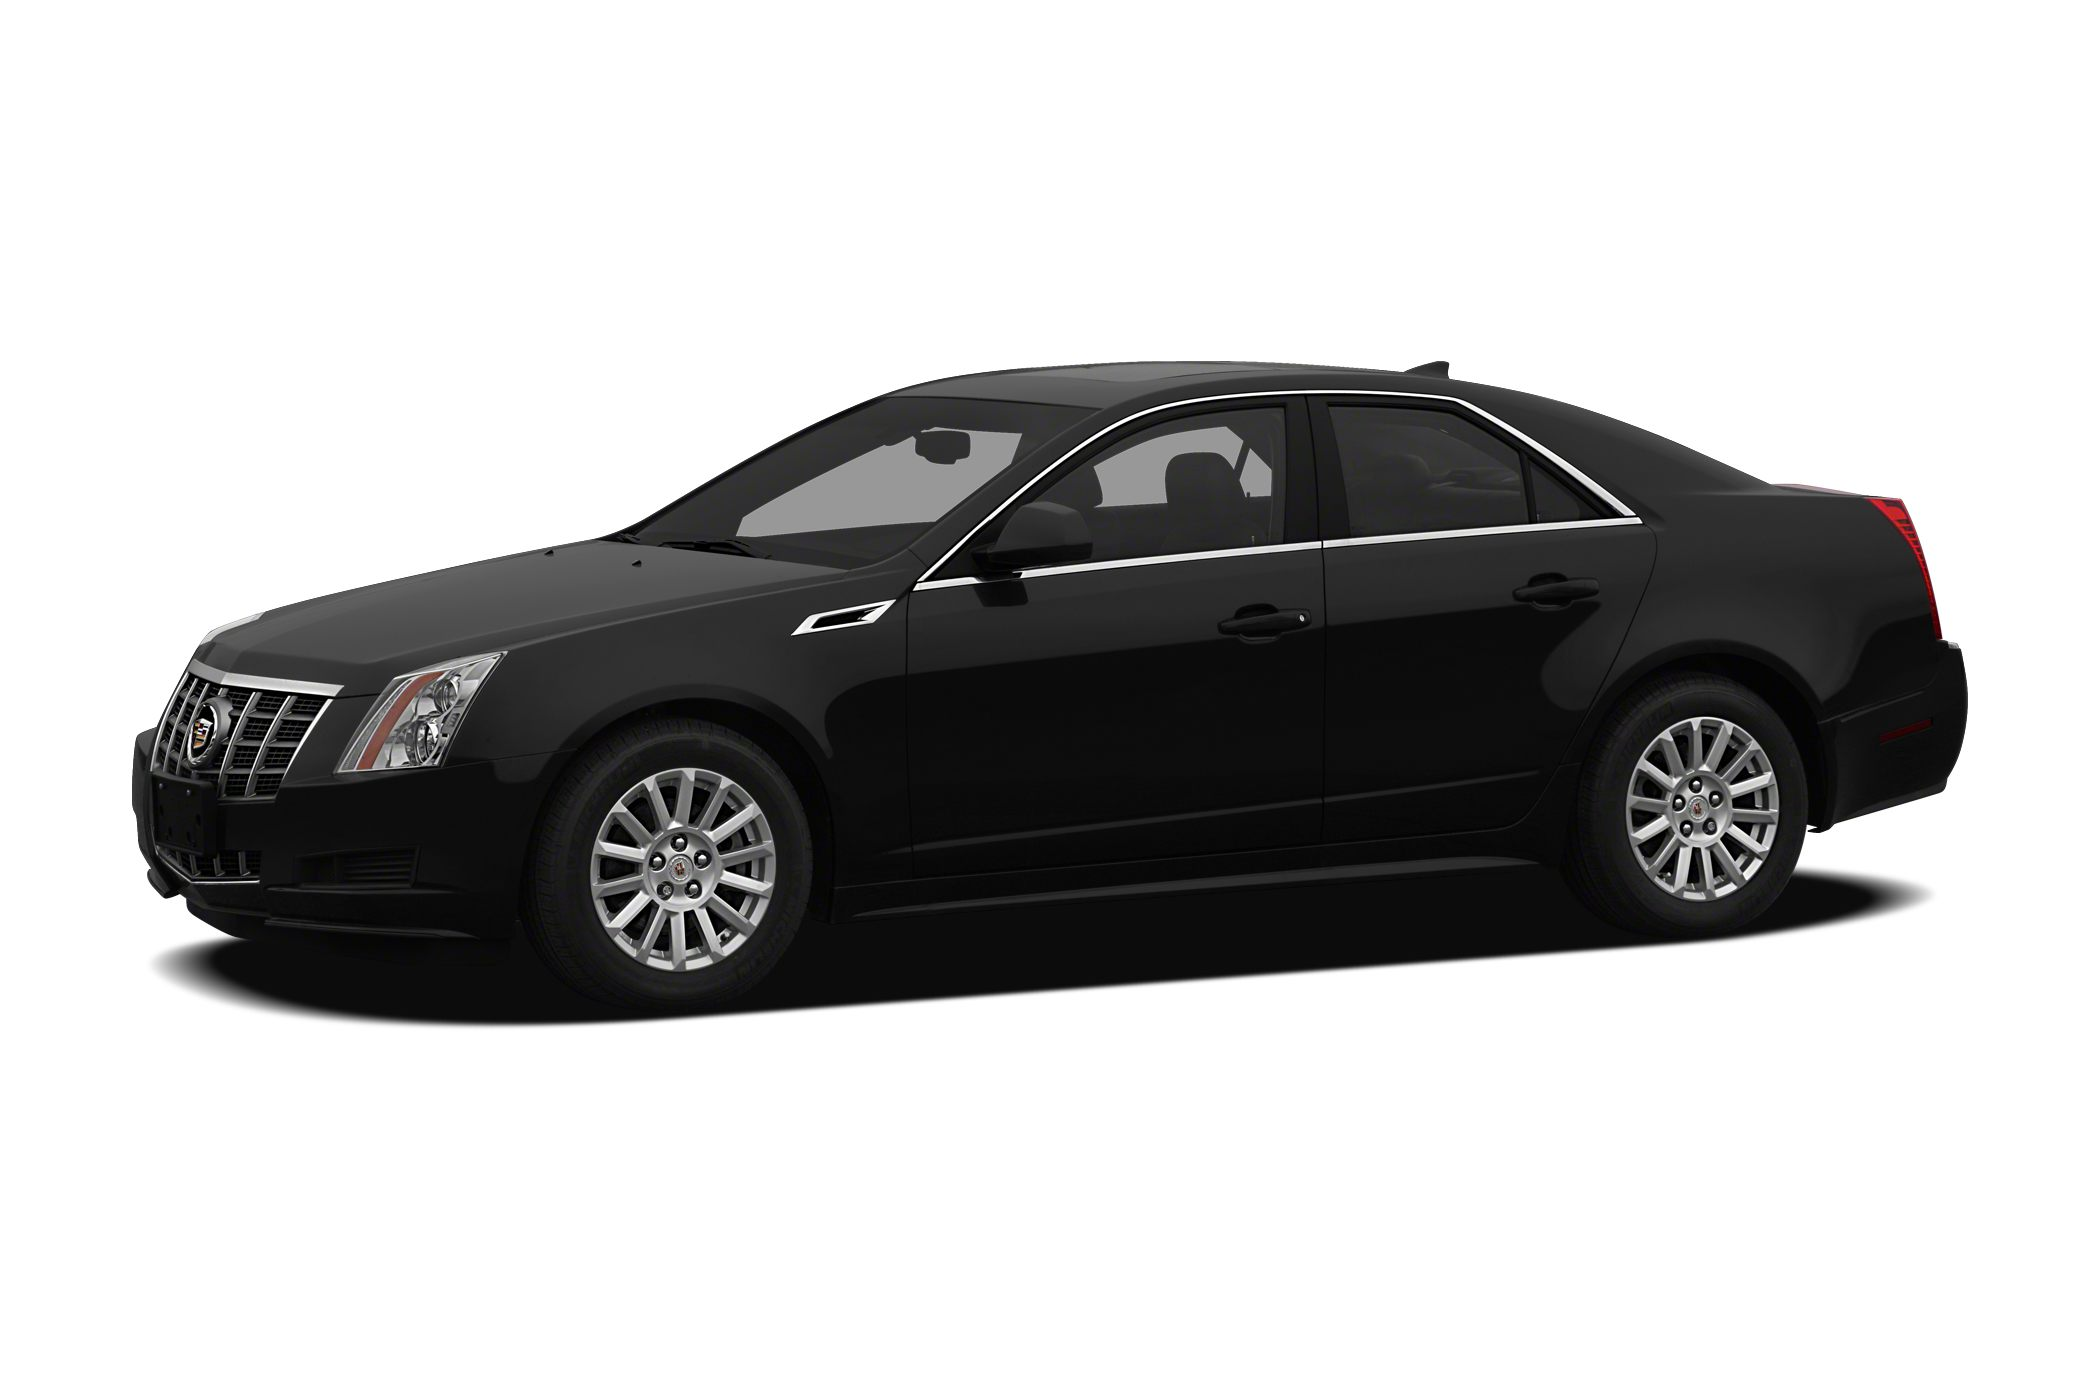 2013 Cadillac CTS Luxury Check out this gently-used 2013 Cadillac CTS Sedan we recently got inCAR